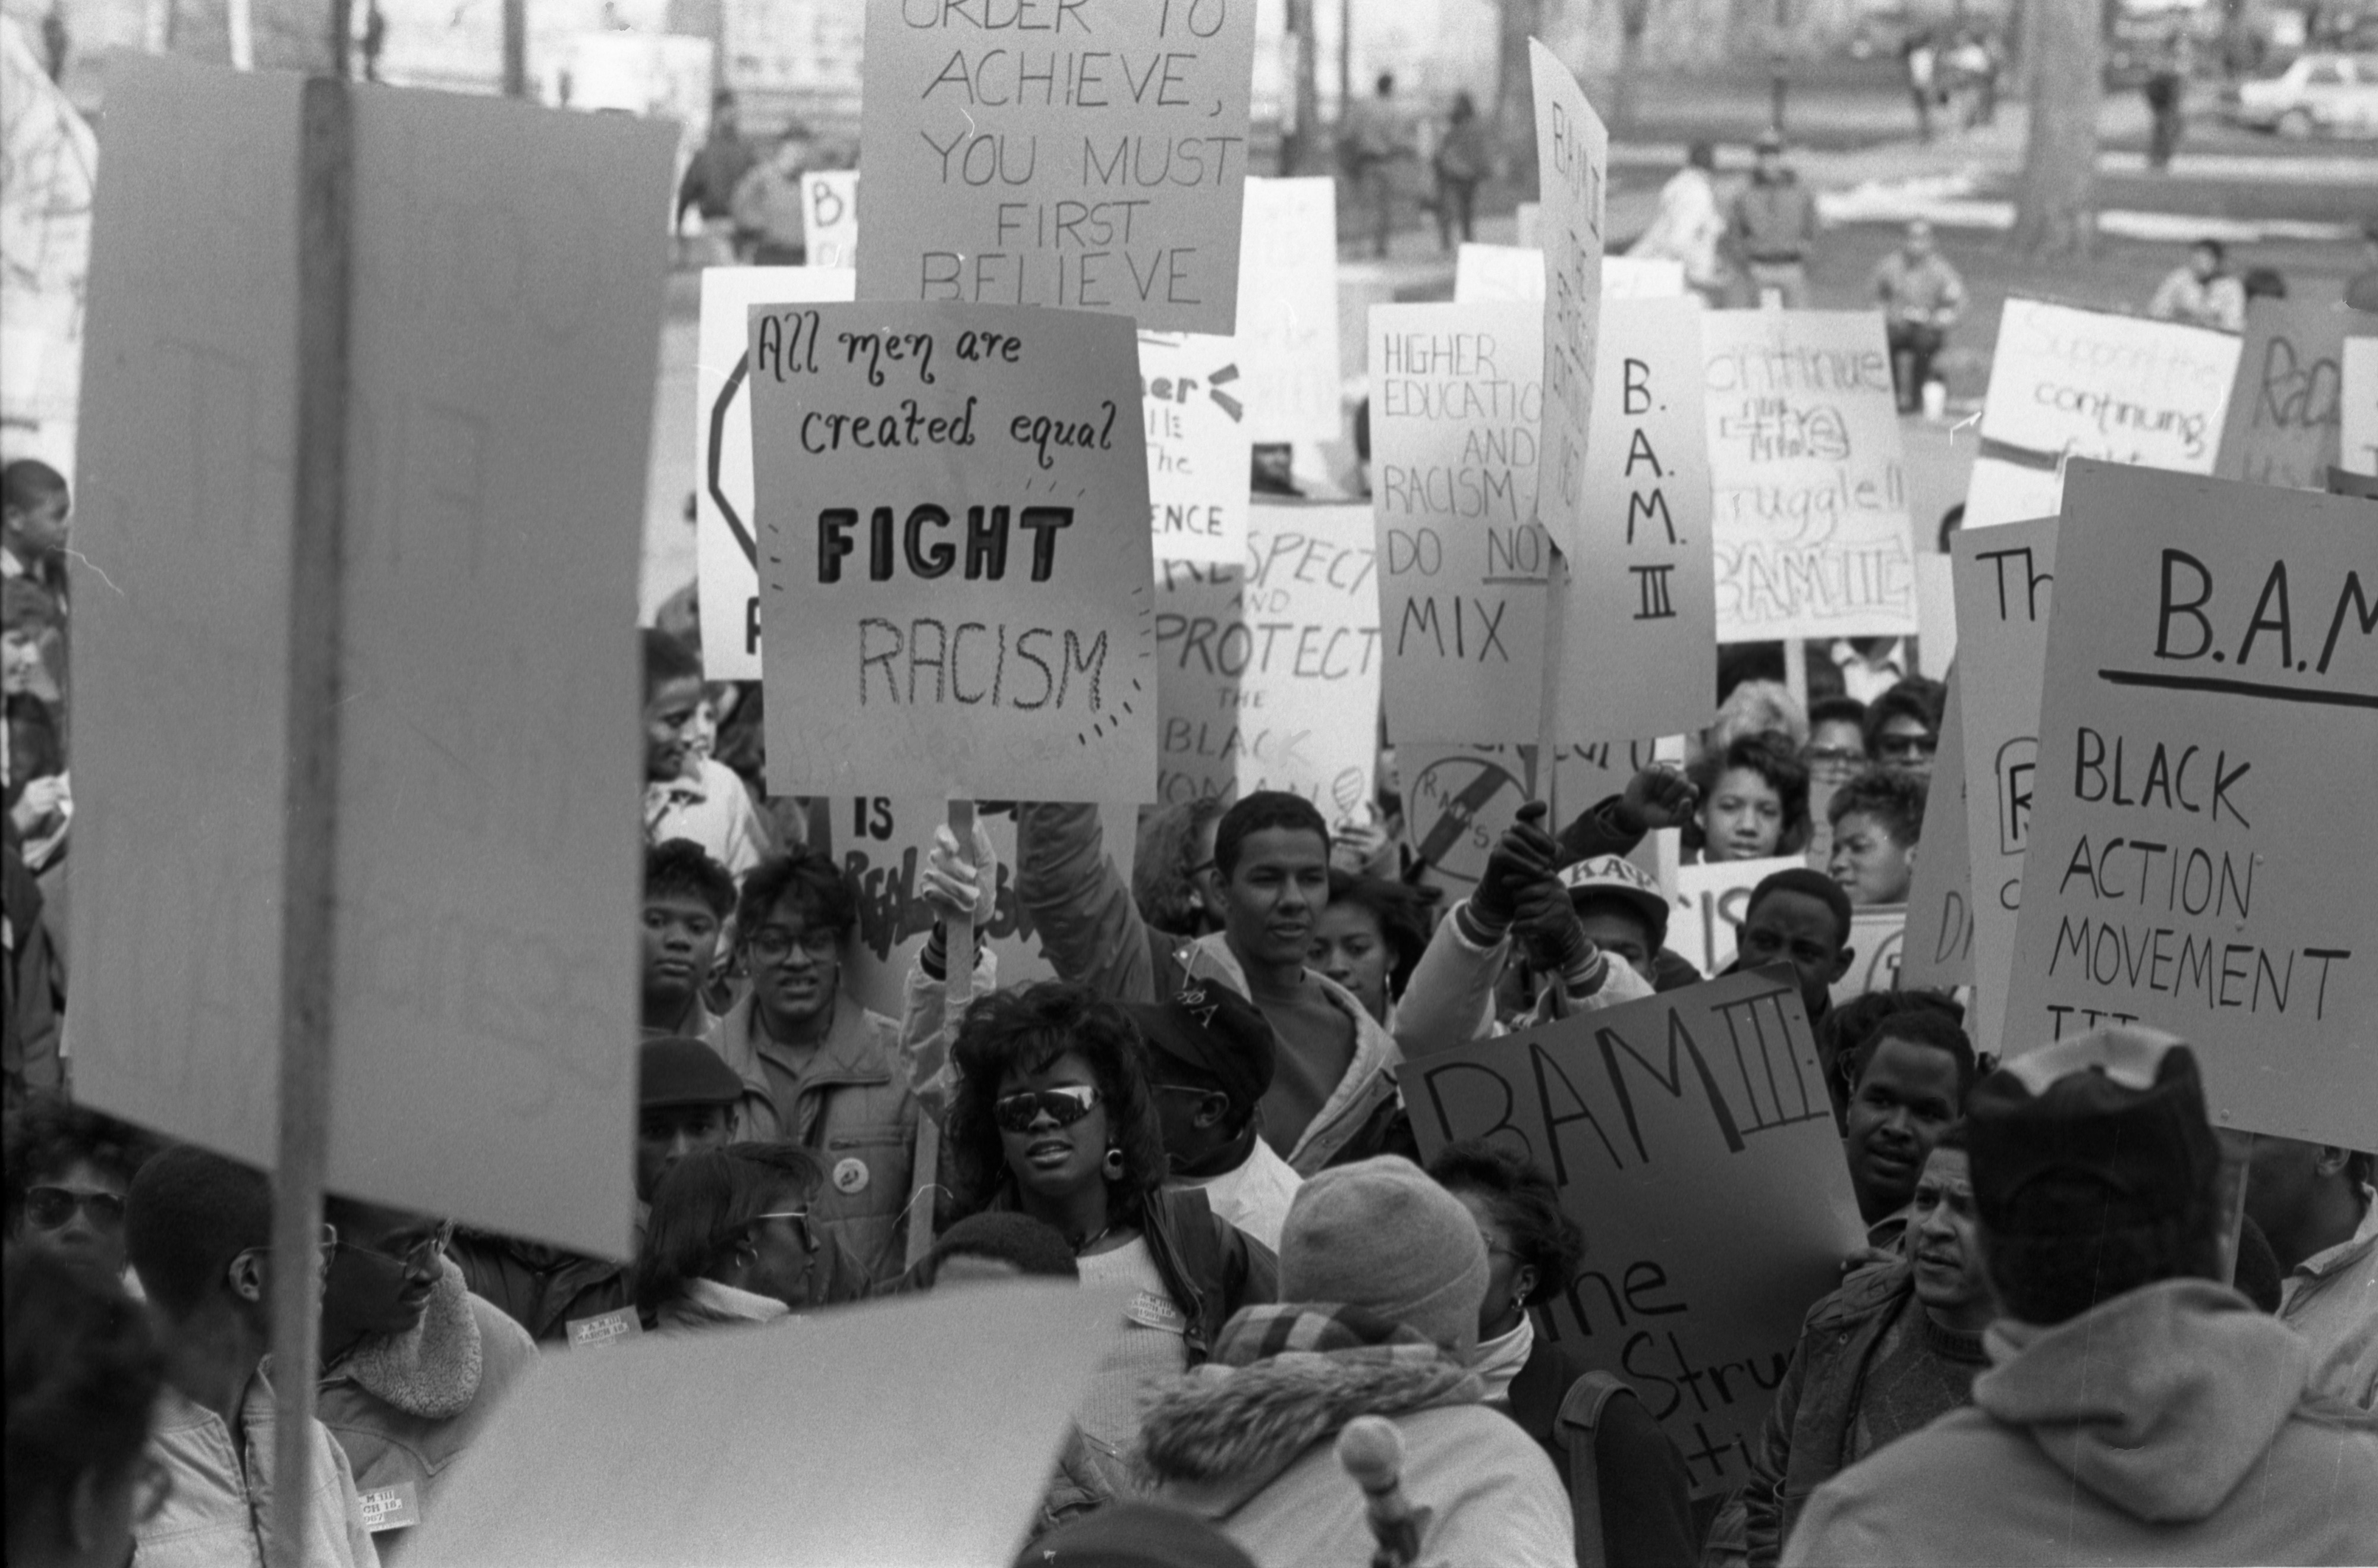 Image from Black Action Movement III Rally , March 19, 1987